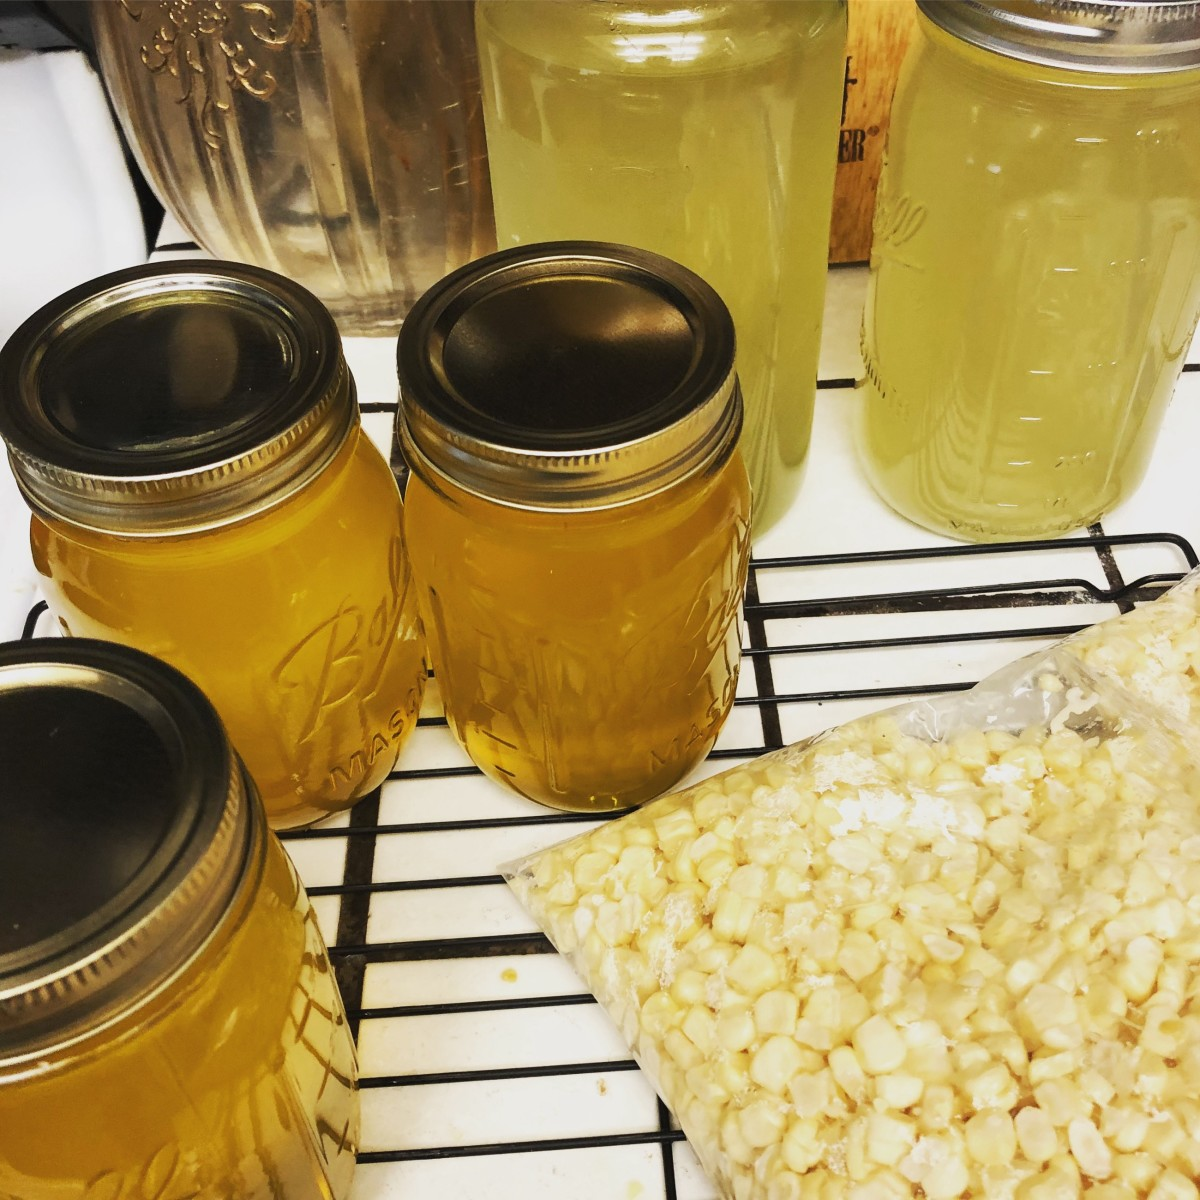 Summer Corn Cob Jelly